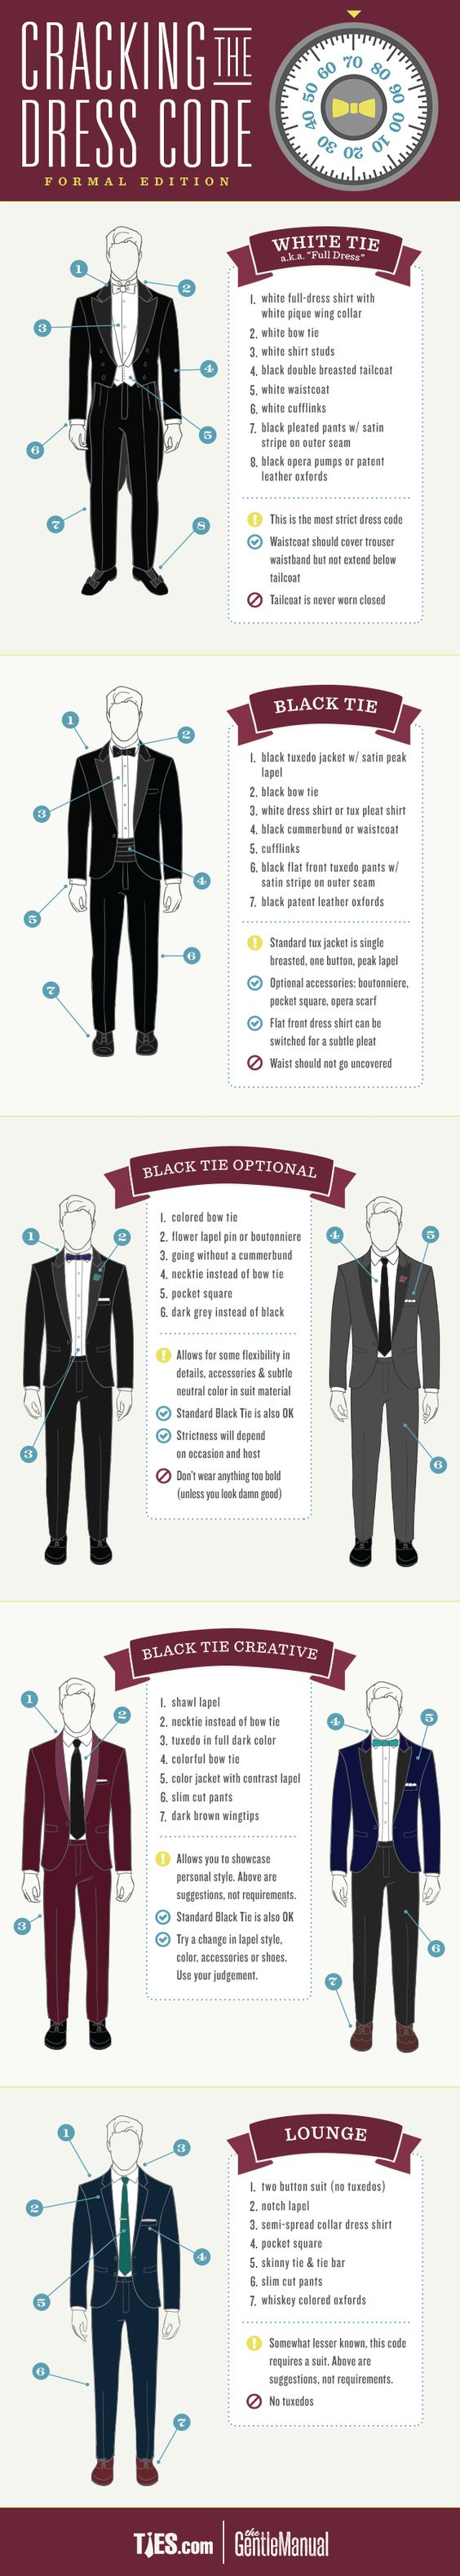 Suit up! From white tie to lounge, what does that suiting dress code mean?